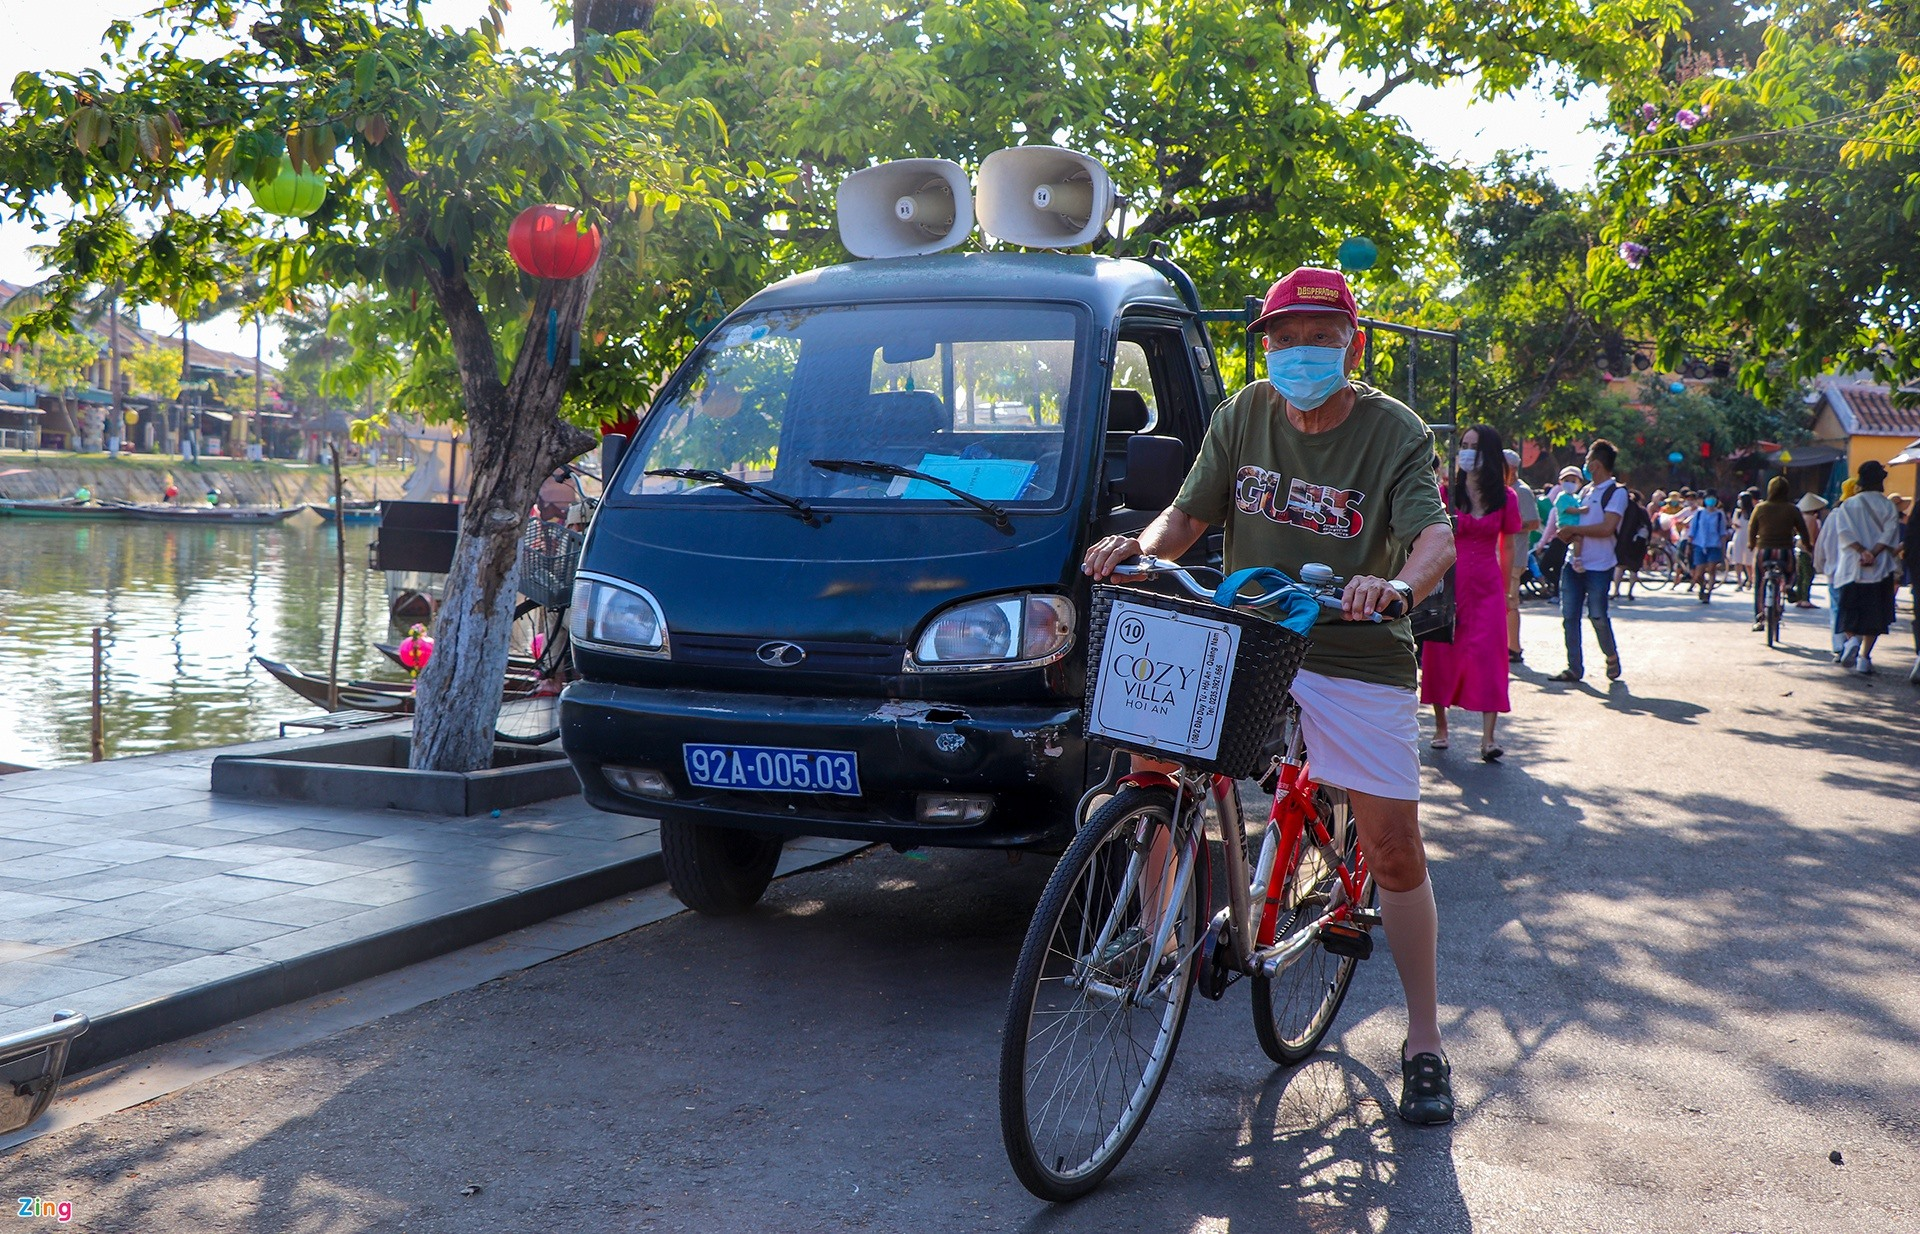 Although Hoi An stops several tourism programmes and activities to ensure the safety for people and visitors in the complex context of Covid-19. The number of visitors to Hoi An increases in the holidays.